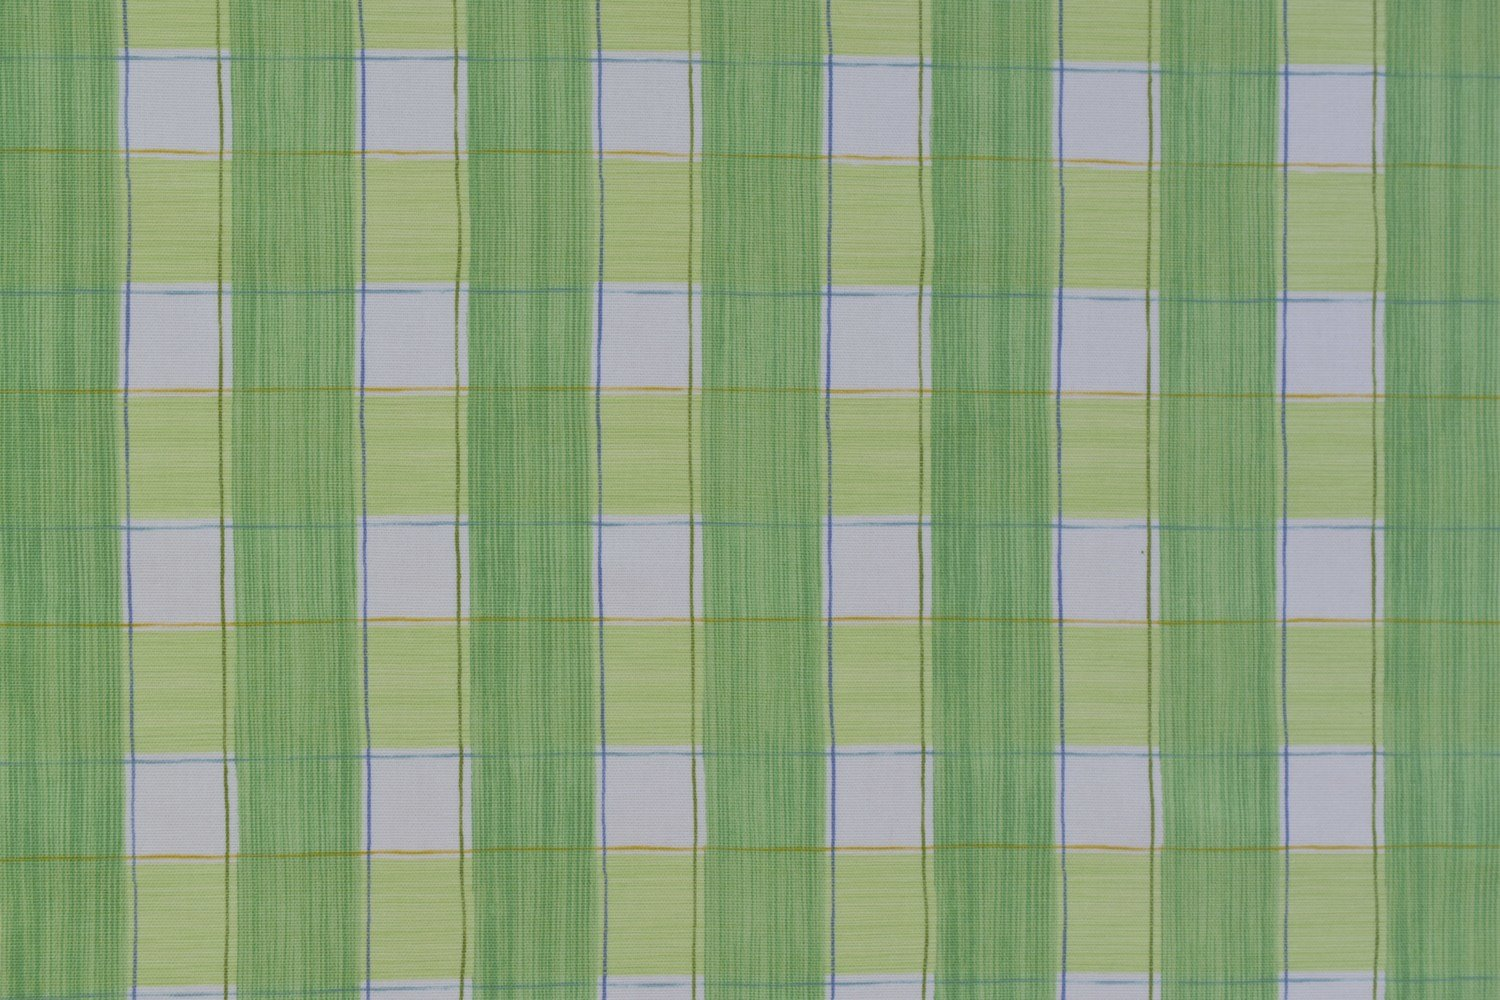 Checkmate-Green/Blue/White